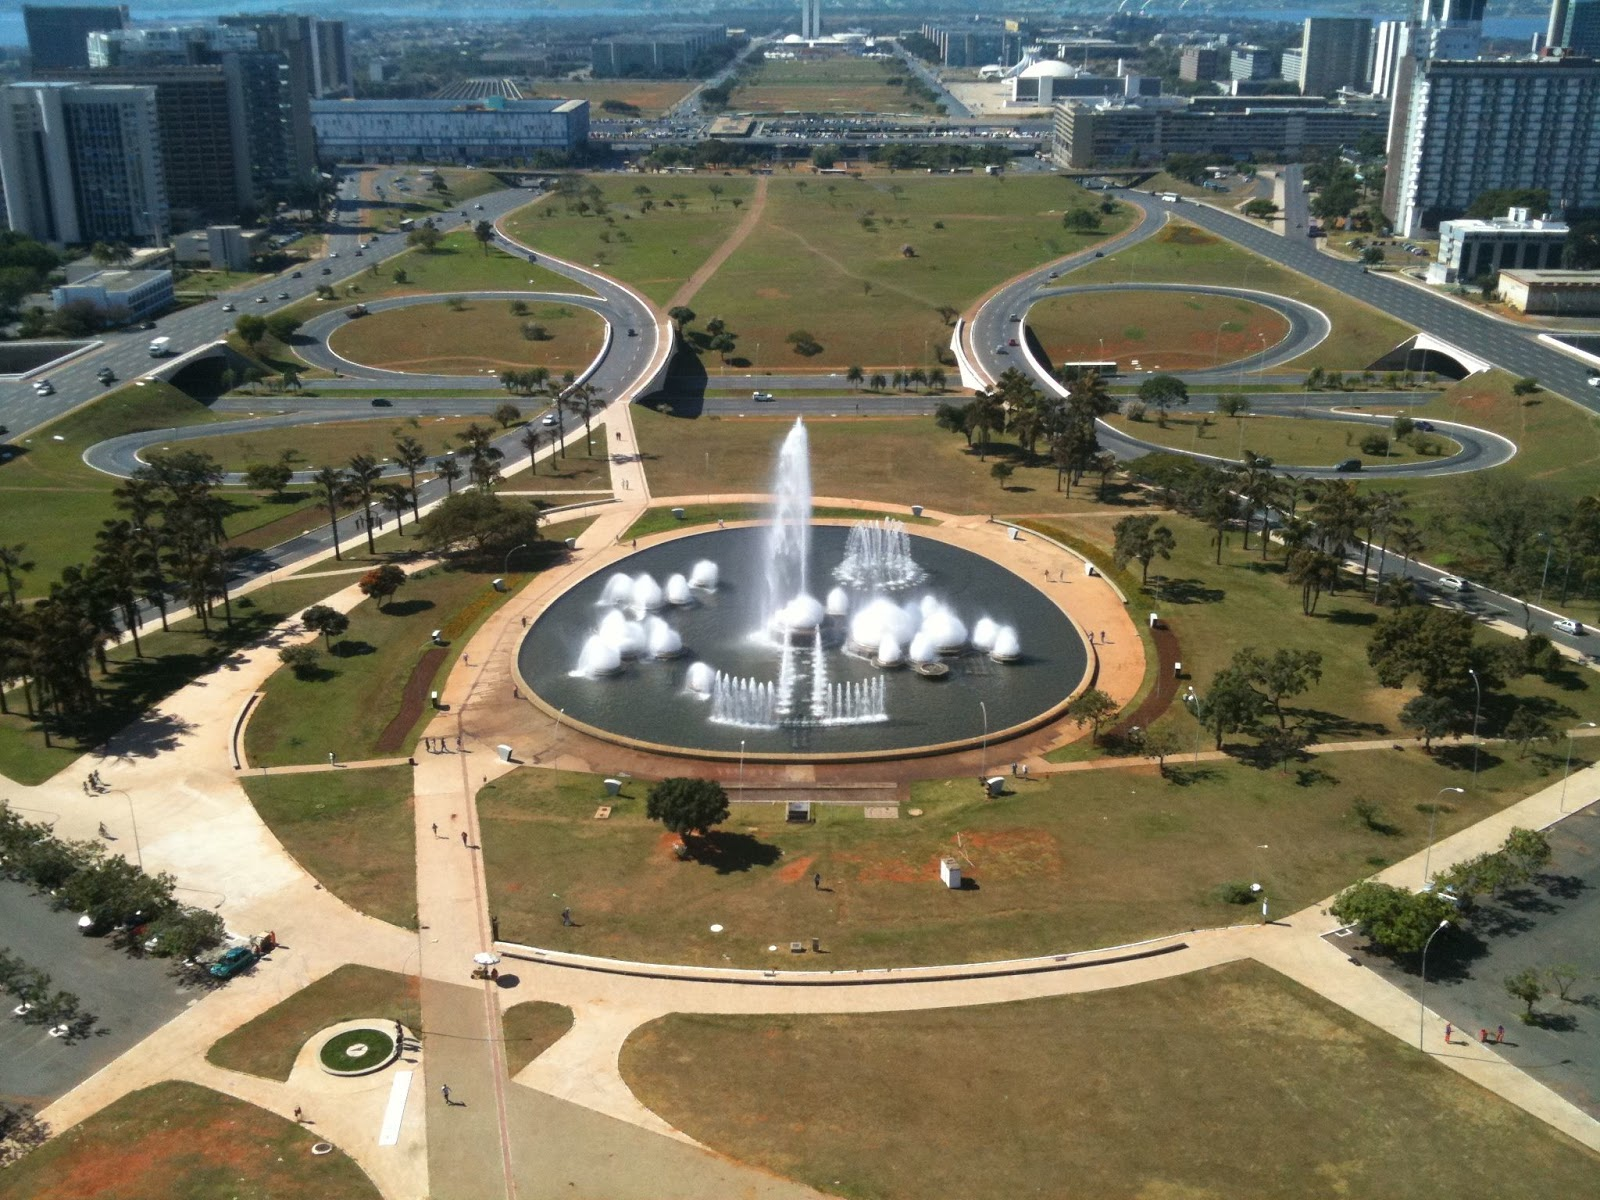 overview of the city of brasilia The british school of brasilia is located in asa sul the school enjoys a spacious, green, clean-air surrounding located in the heart of the city's schools quarter the building itself was designed by renowed architect oscar niemeyer and also features murals by artist athos bulcão.